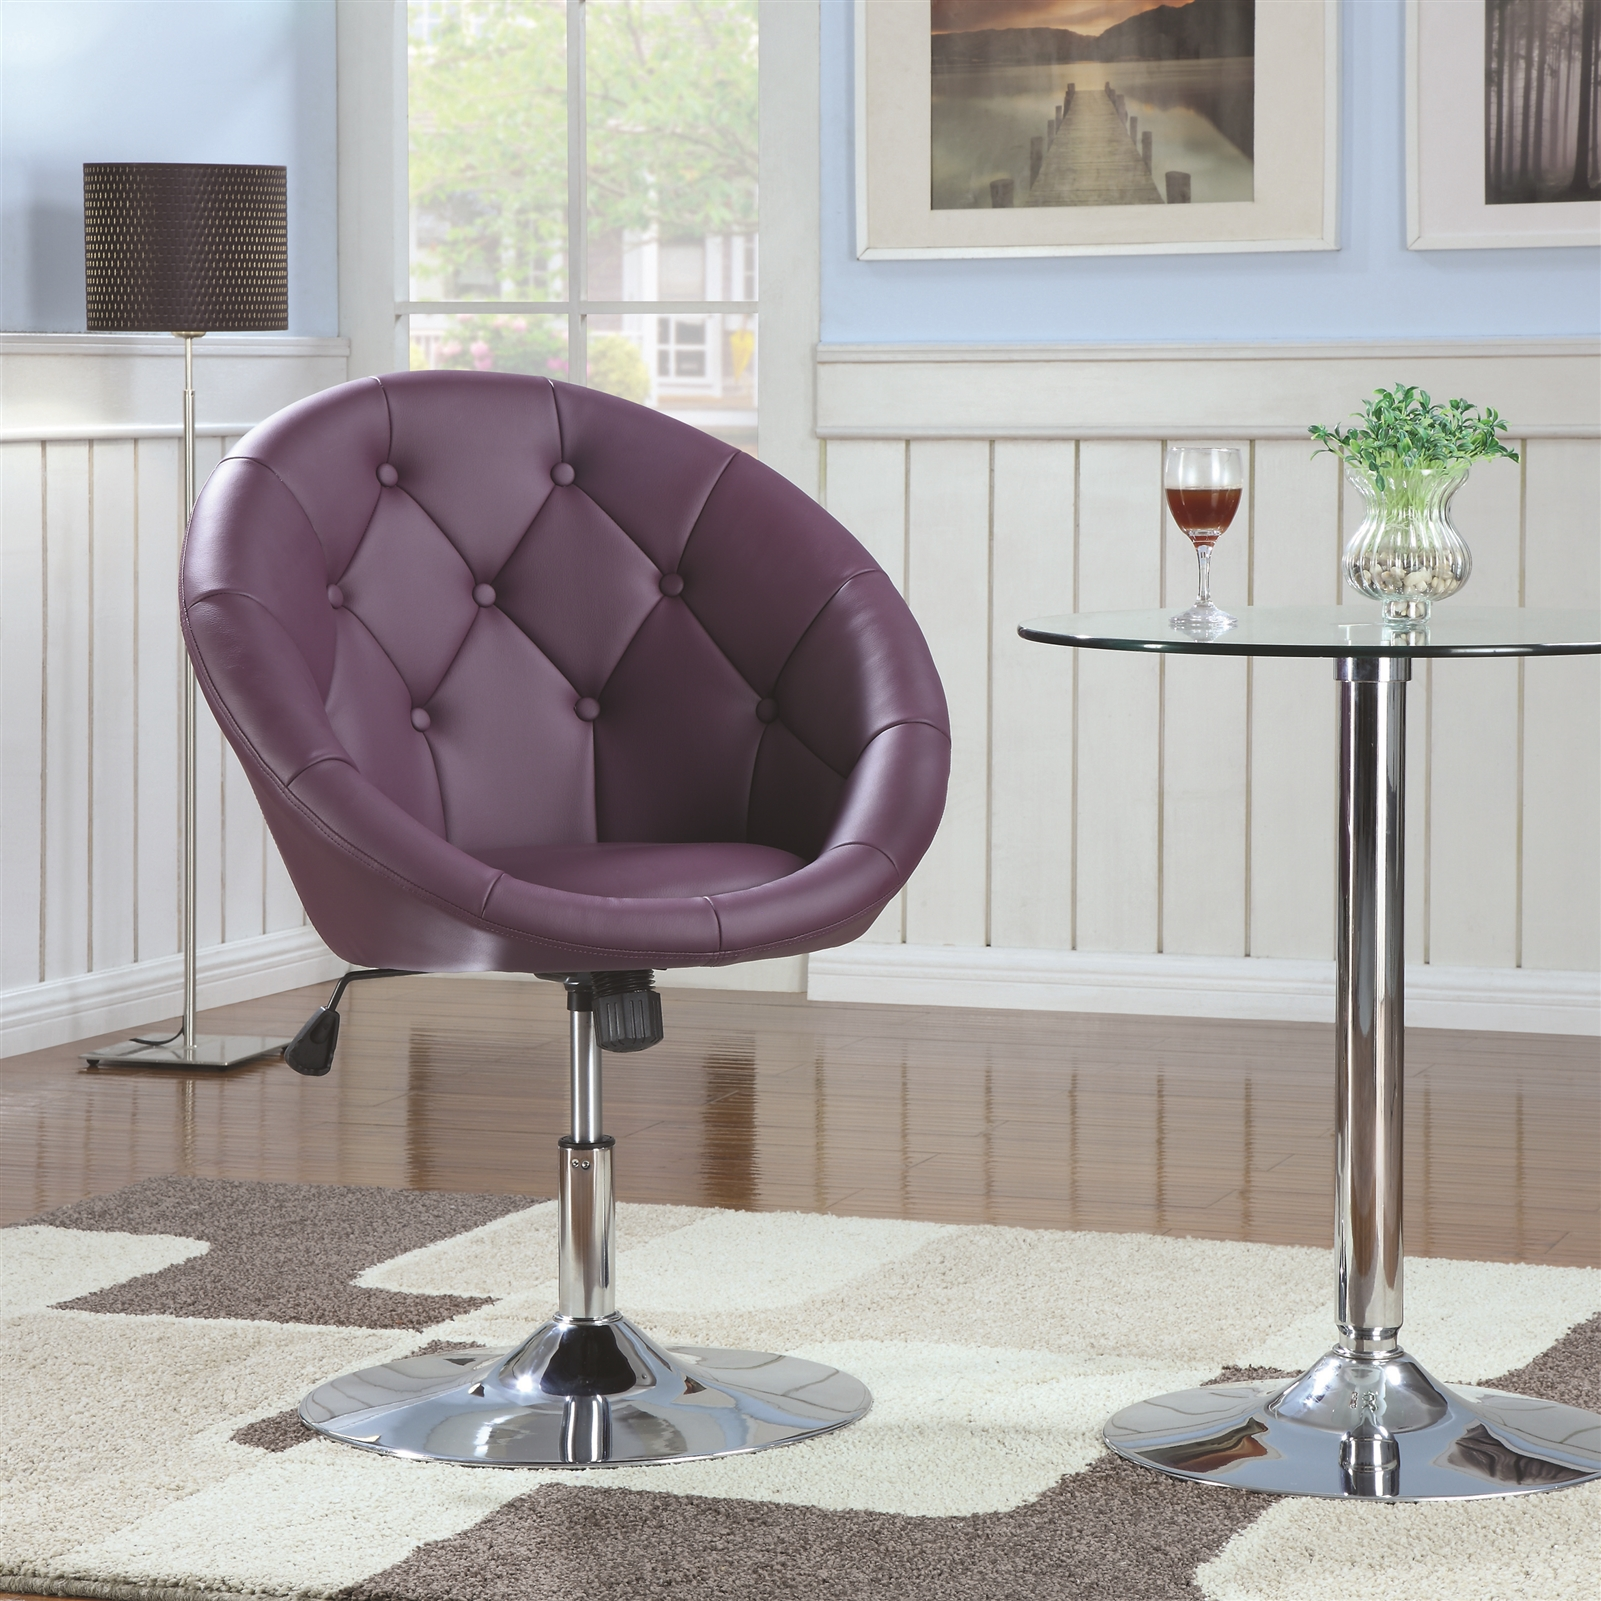 Mick Round Purple Leatherette Tufted Swivel Chair